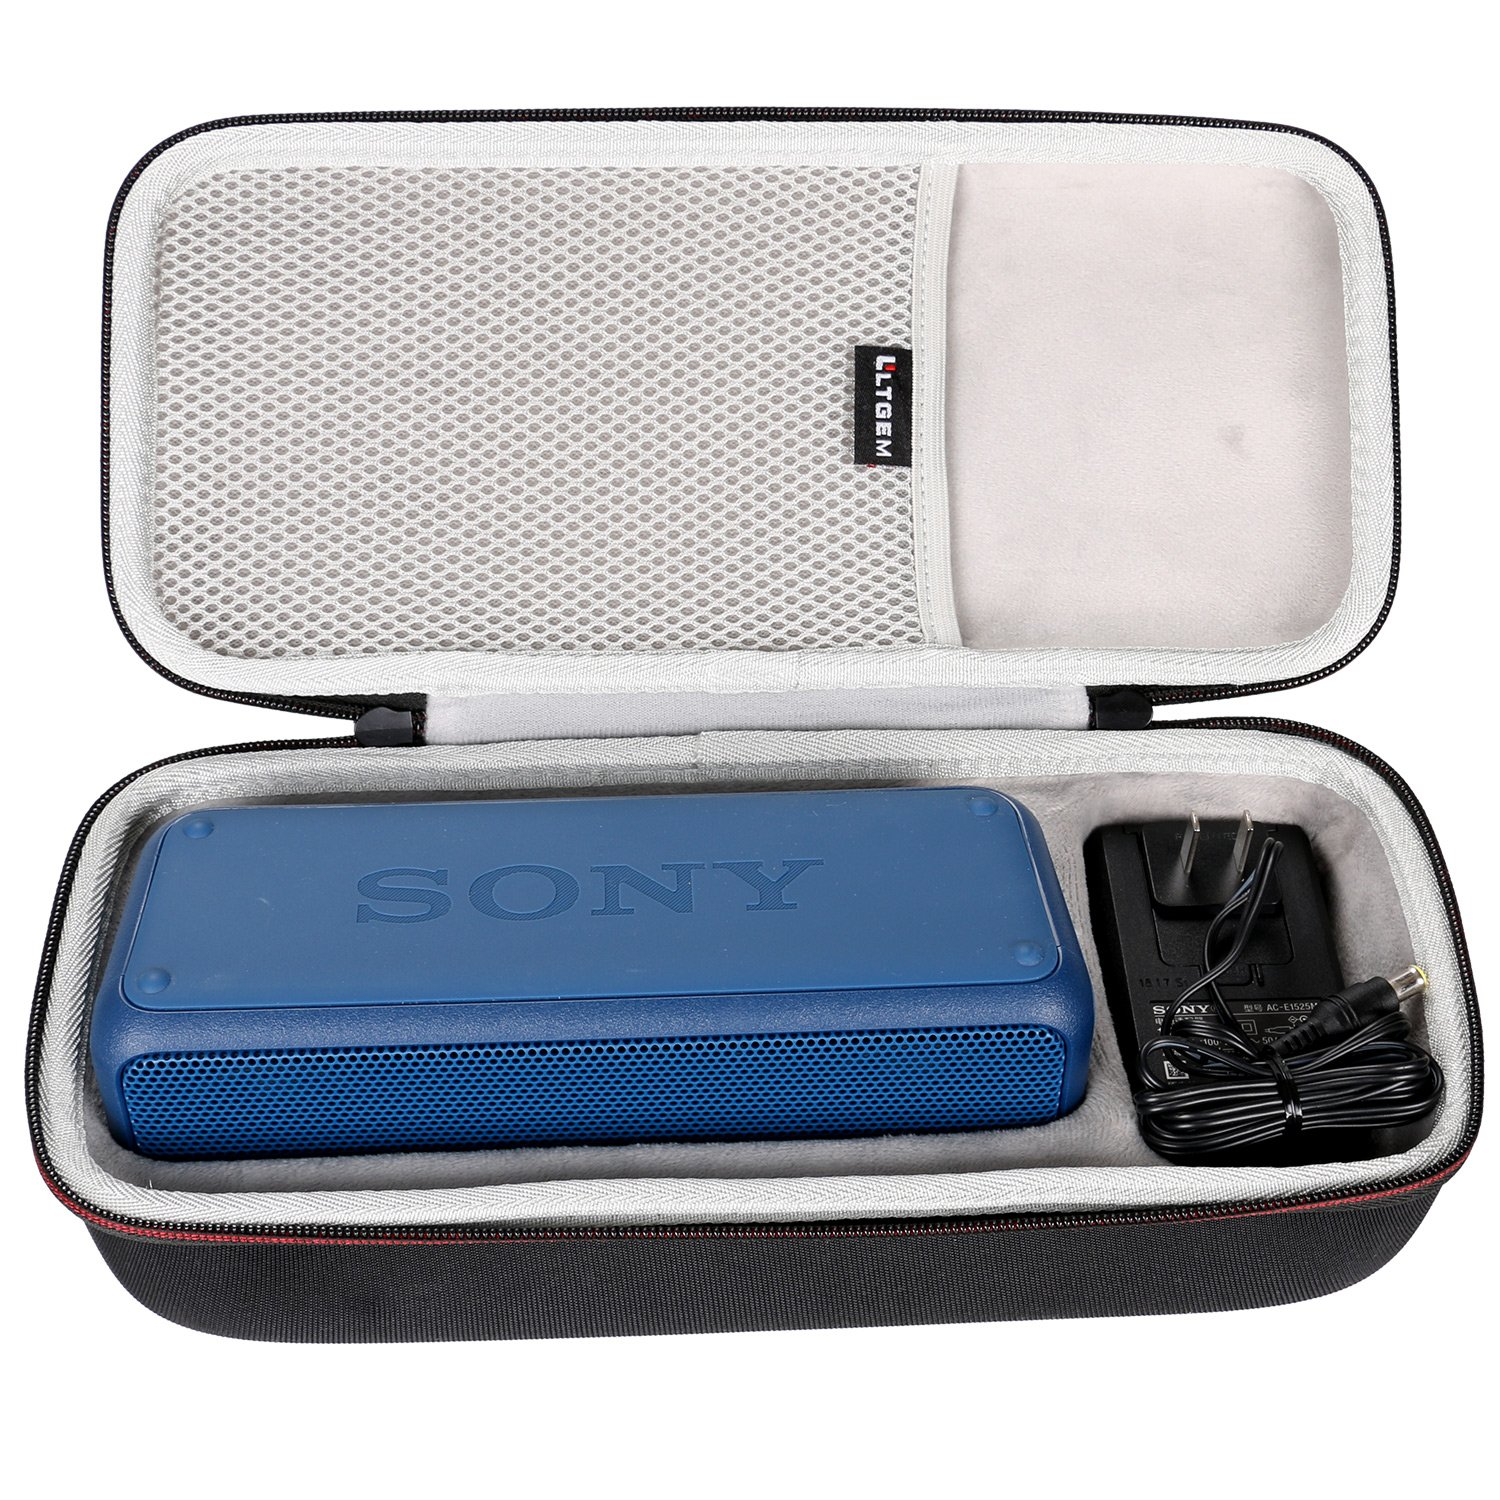 LTGEM EVA Hard Case Travel Carrying Storage Bag for Sony SRS-XB3 Portable Wireless Bluetooth Speaker. Fits USB Cable and Wall Charger.